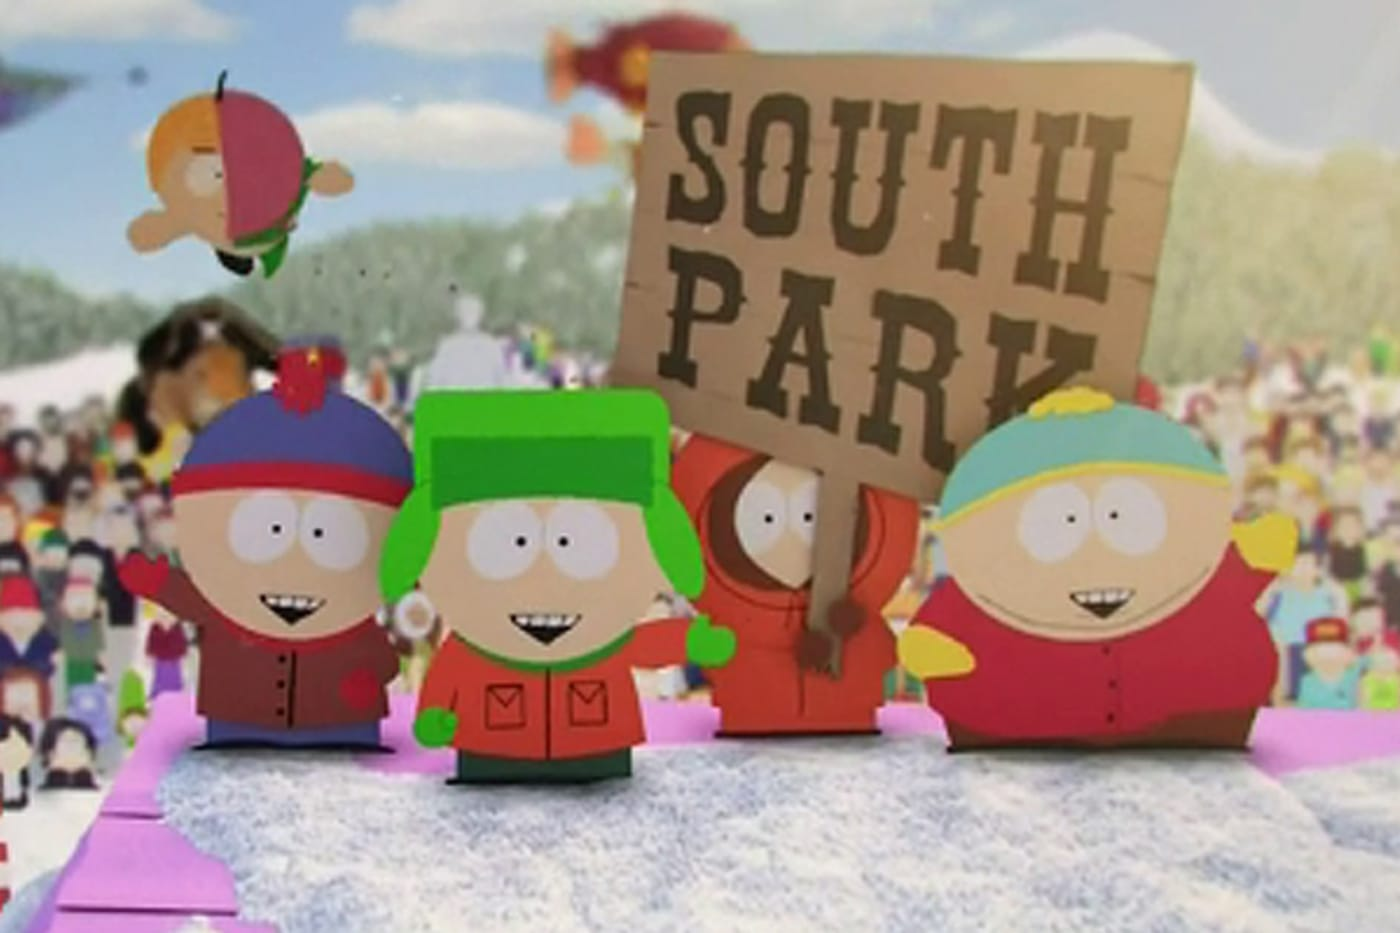 best south park characters lead